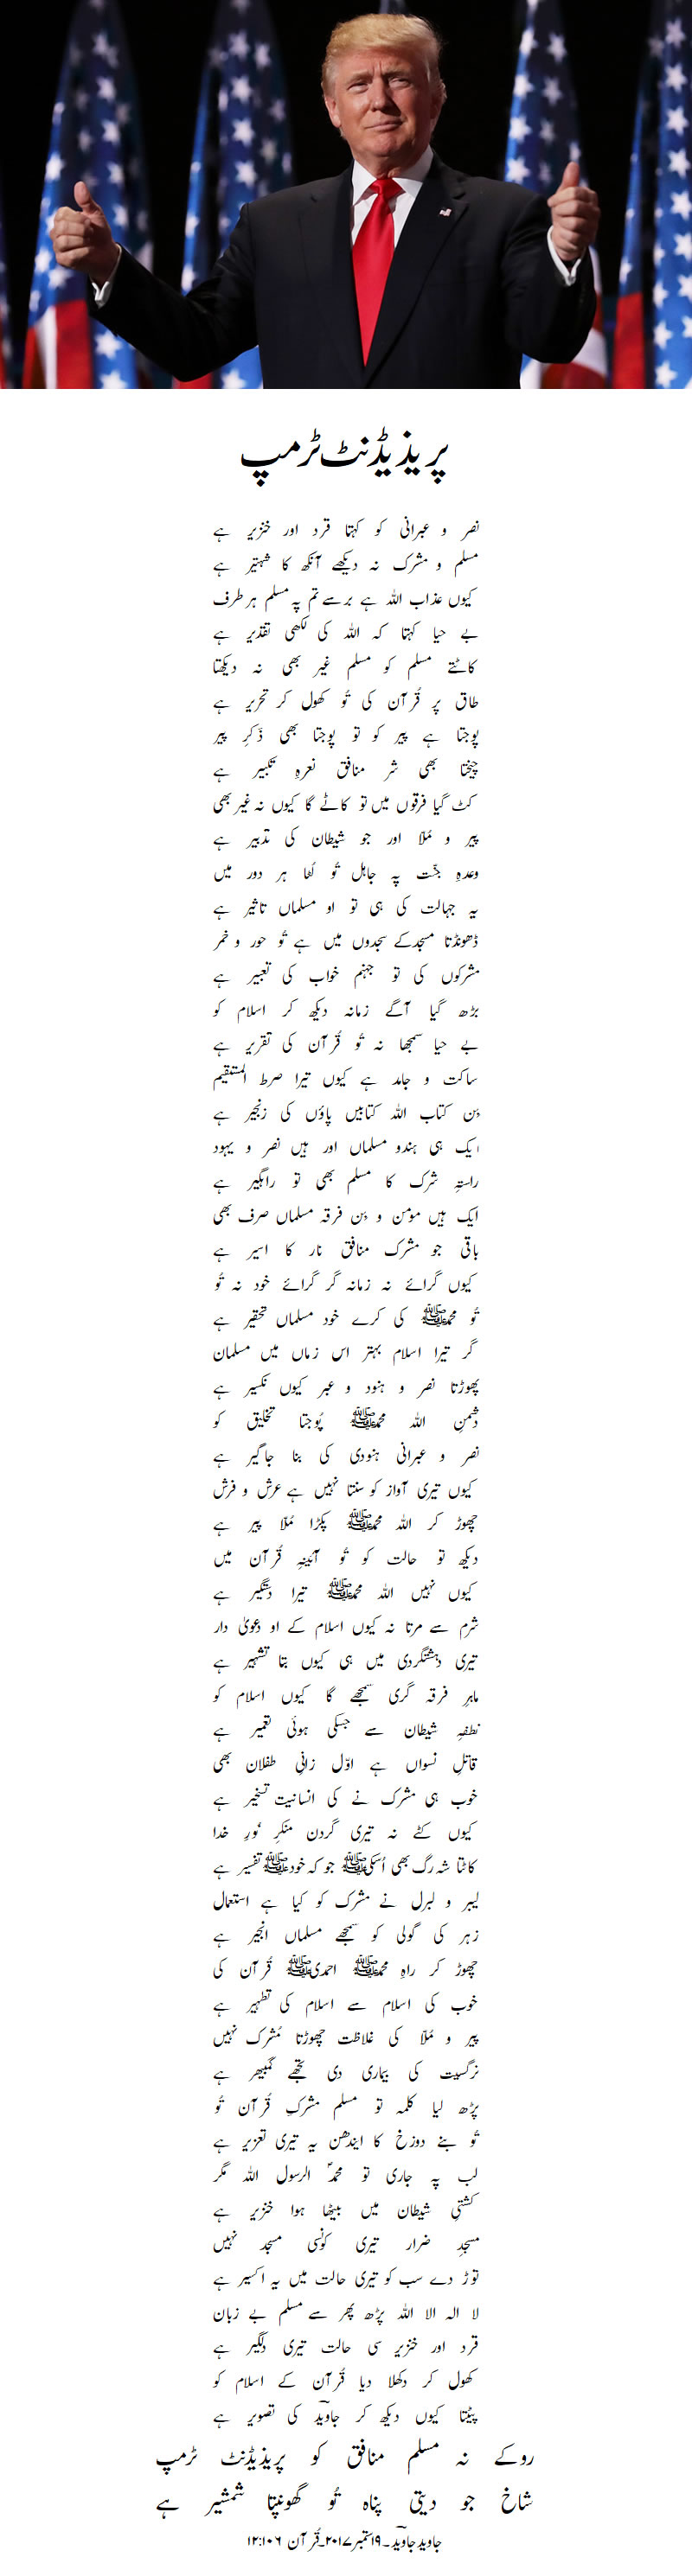 President Trump poem by javed javed